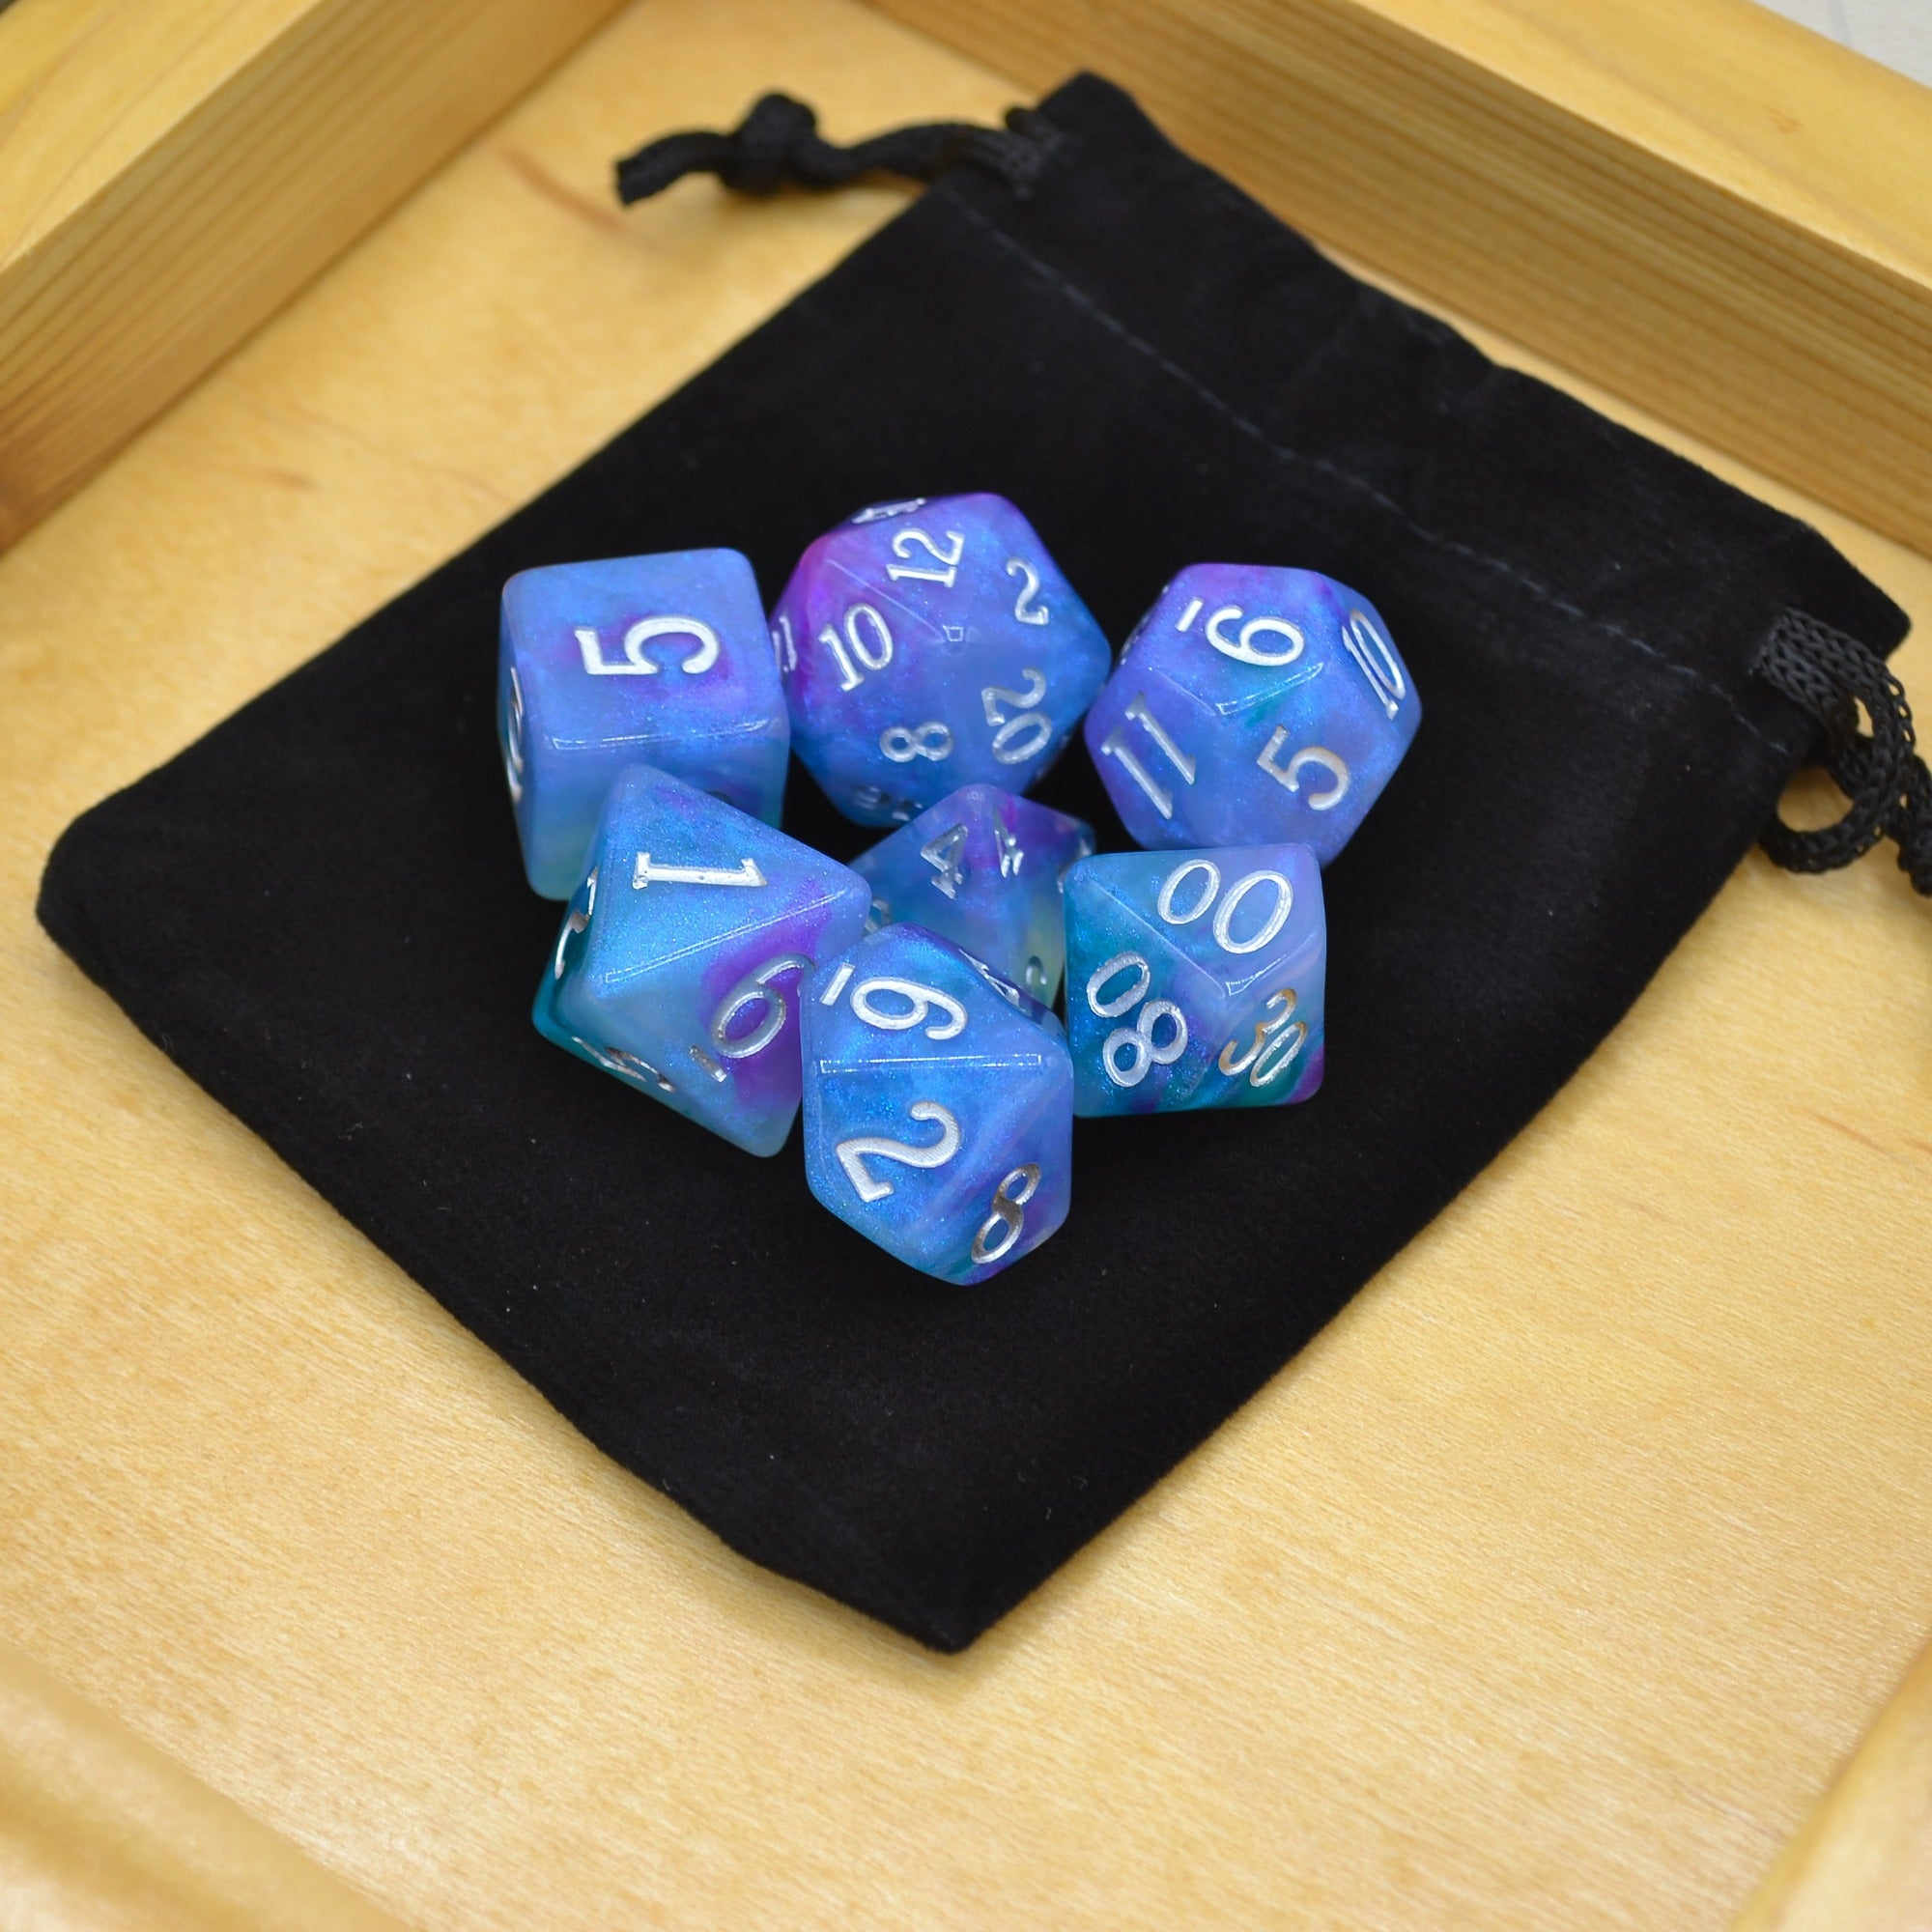 Oberon's Gaze Polyhedral Dice Set - 7 Dice Total - Wildbot3d